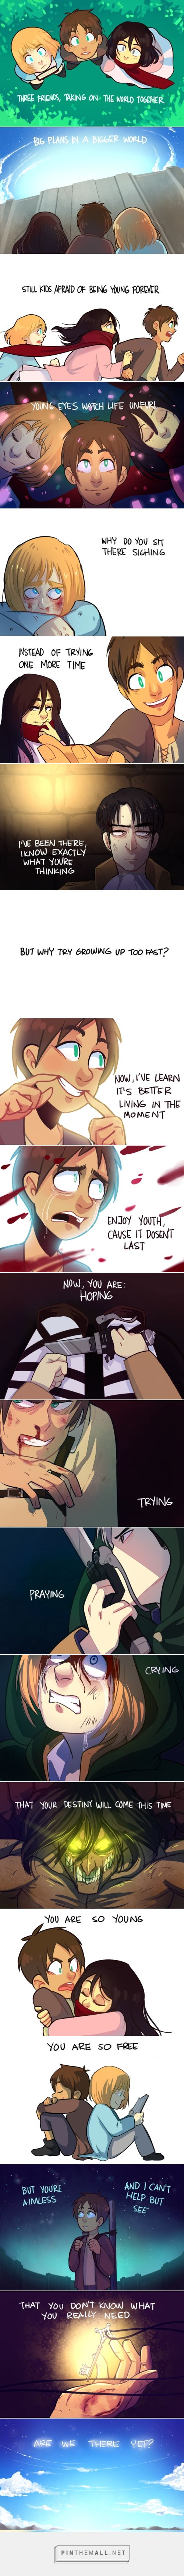 EMA: Crusaders. (Attack on Titan) Source: http://moeskine.tumblr.com/post/76980426413/e-o-m-o-a-c-r-u-s-a-d-e-r-s